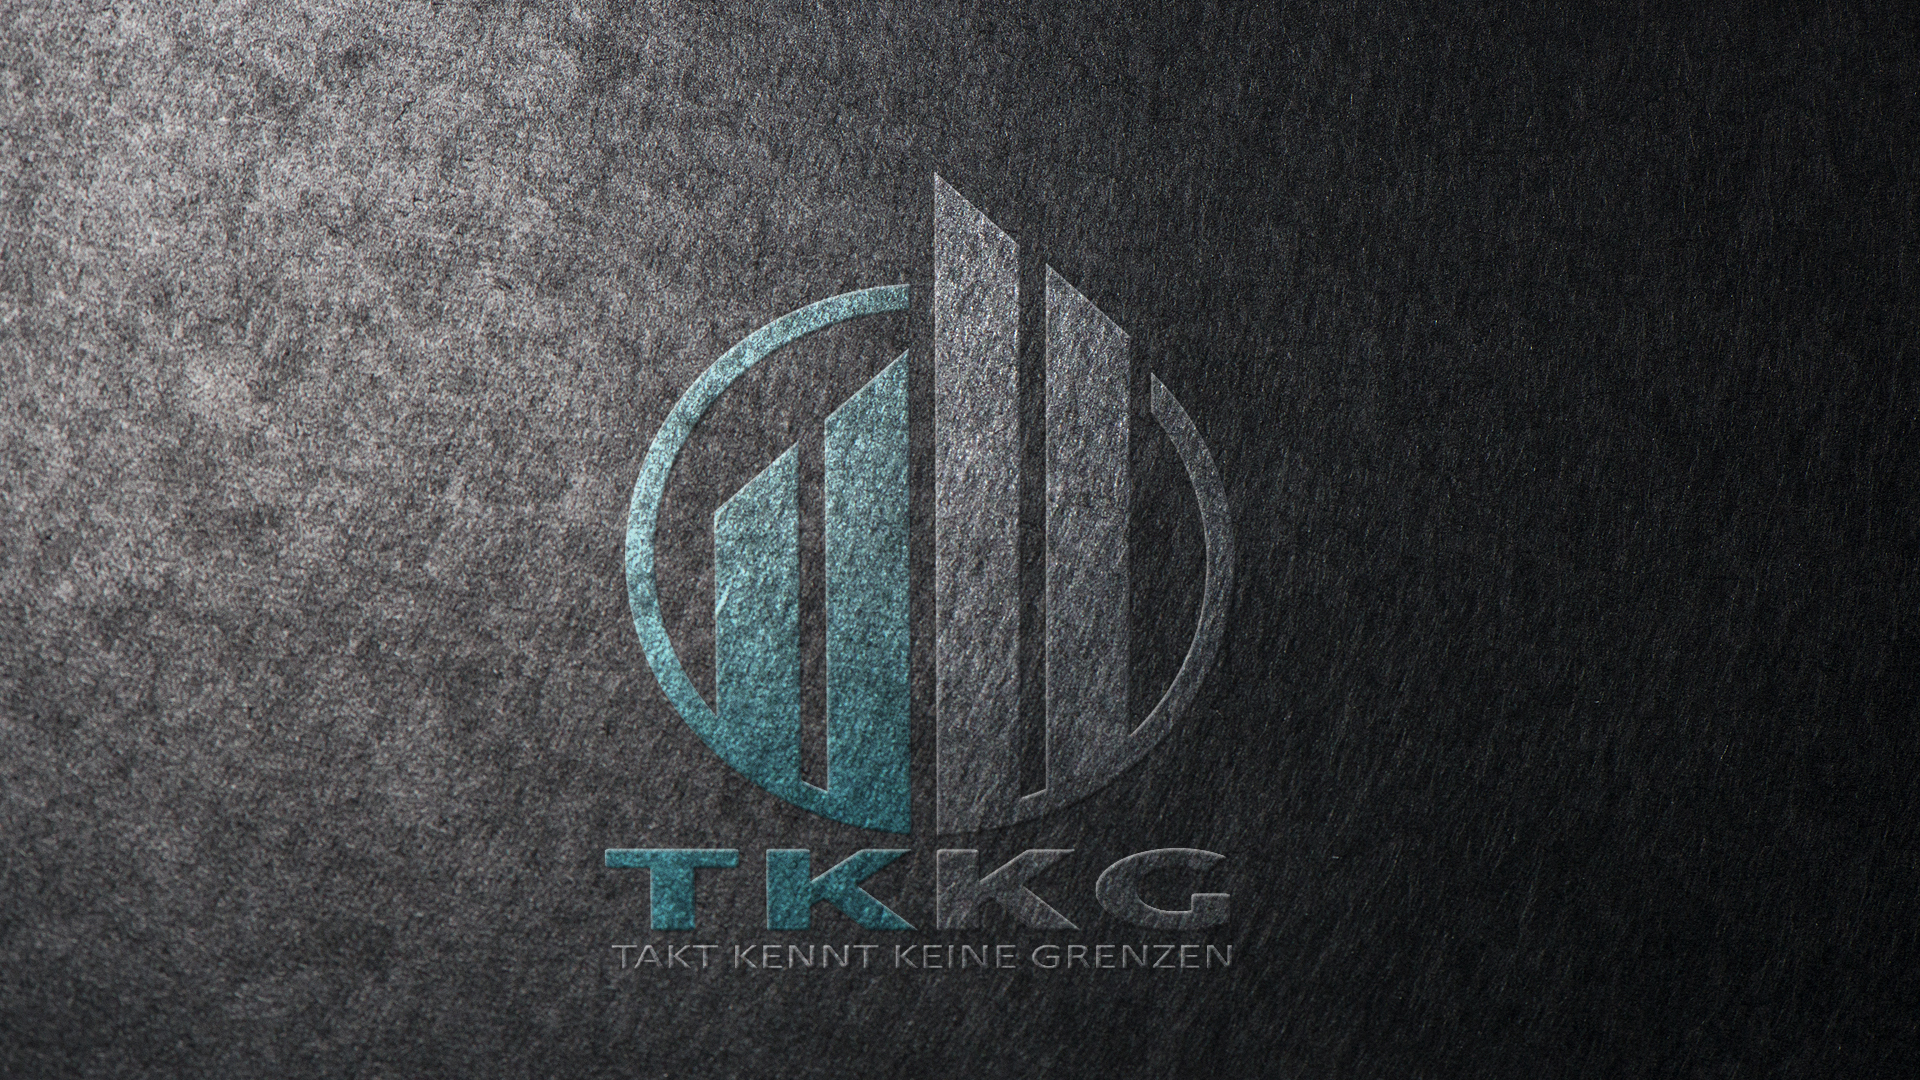 [TkkG]™ Wallpaper #5